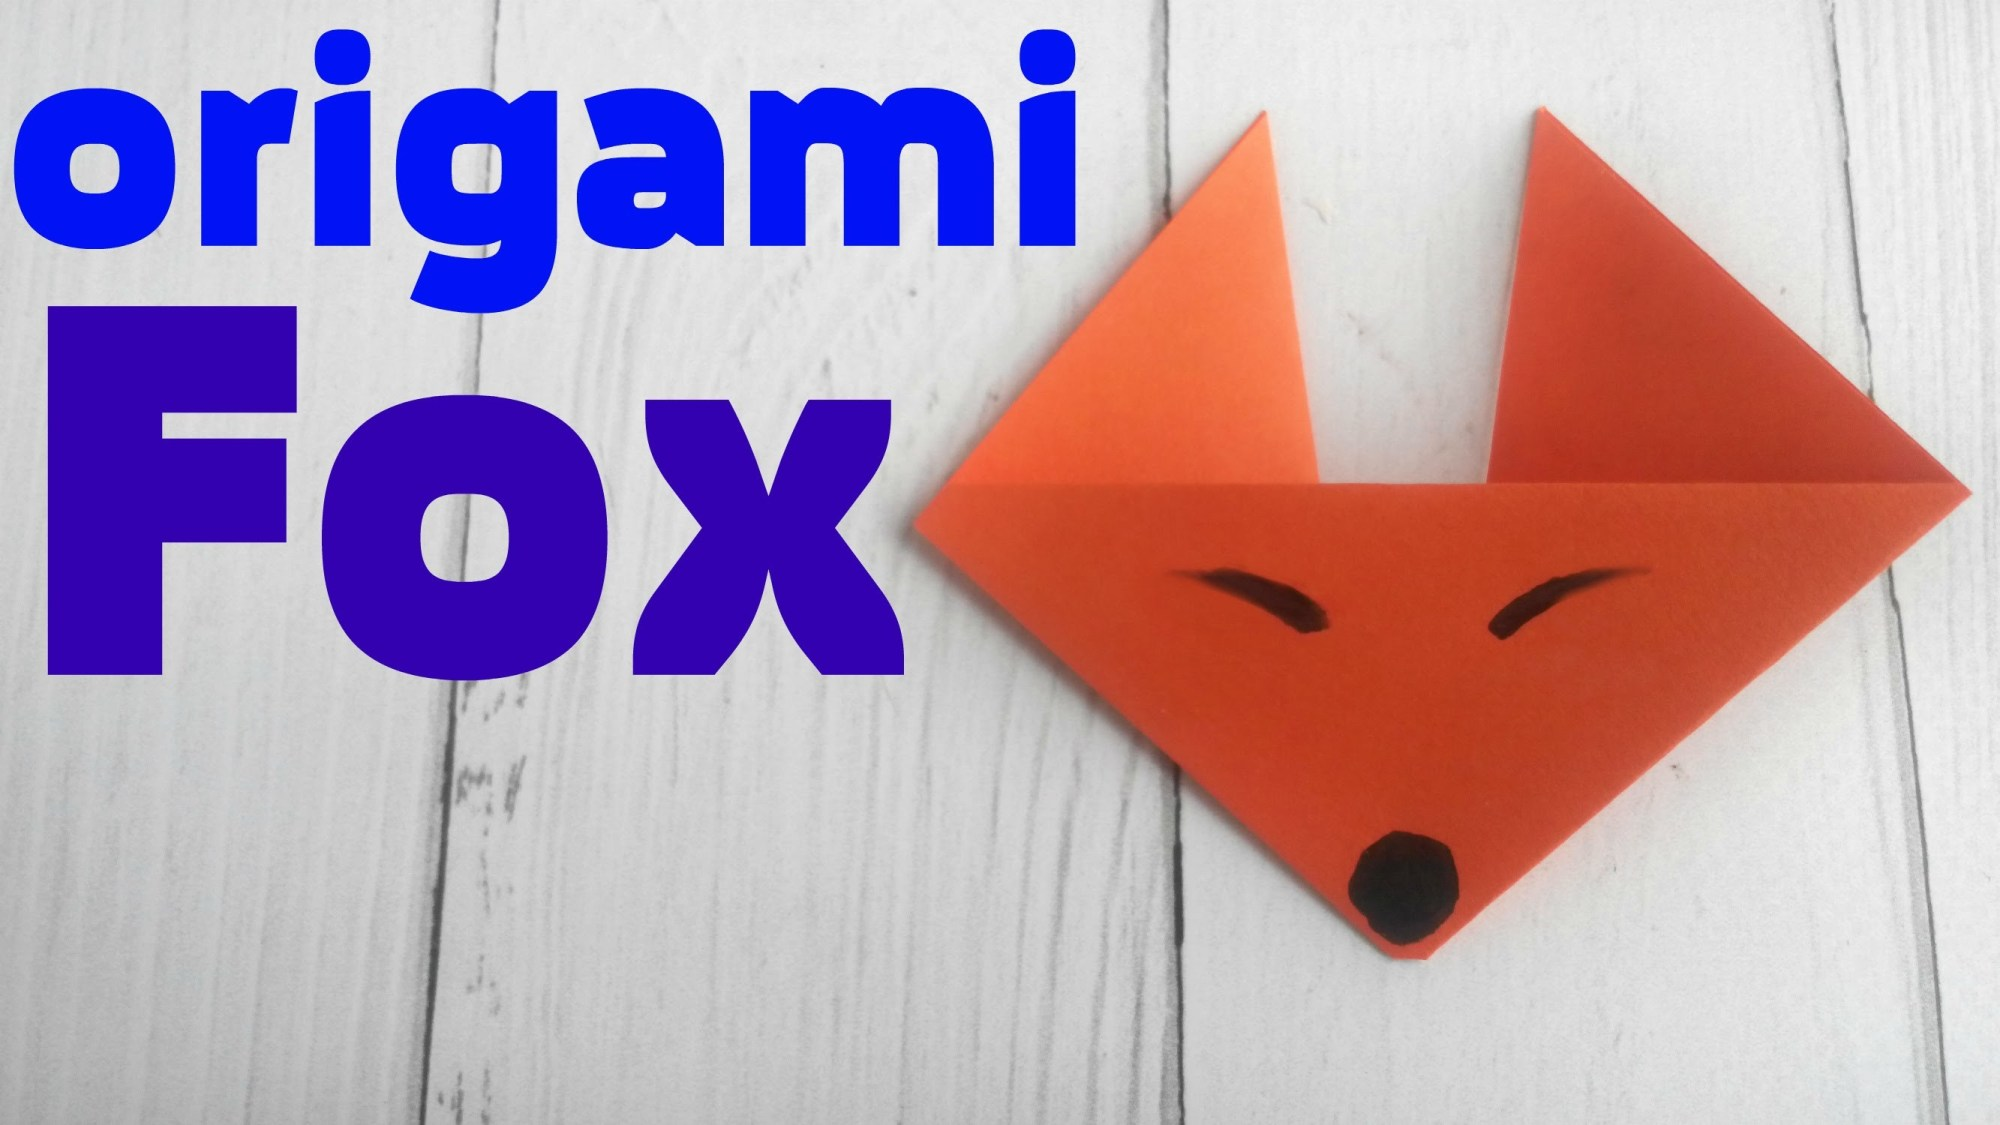 hight resolution of origami fox face easy tutorial 3d instructions origami diagrams for children for beginners